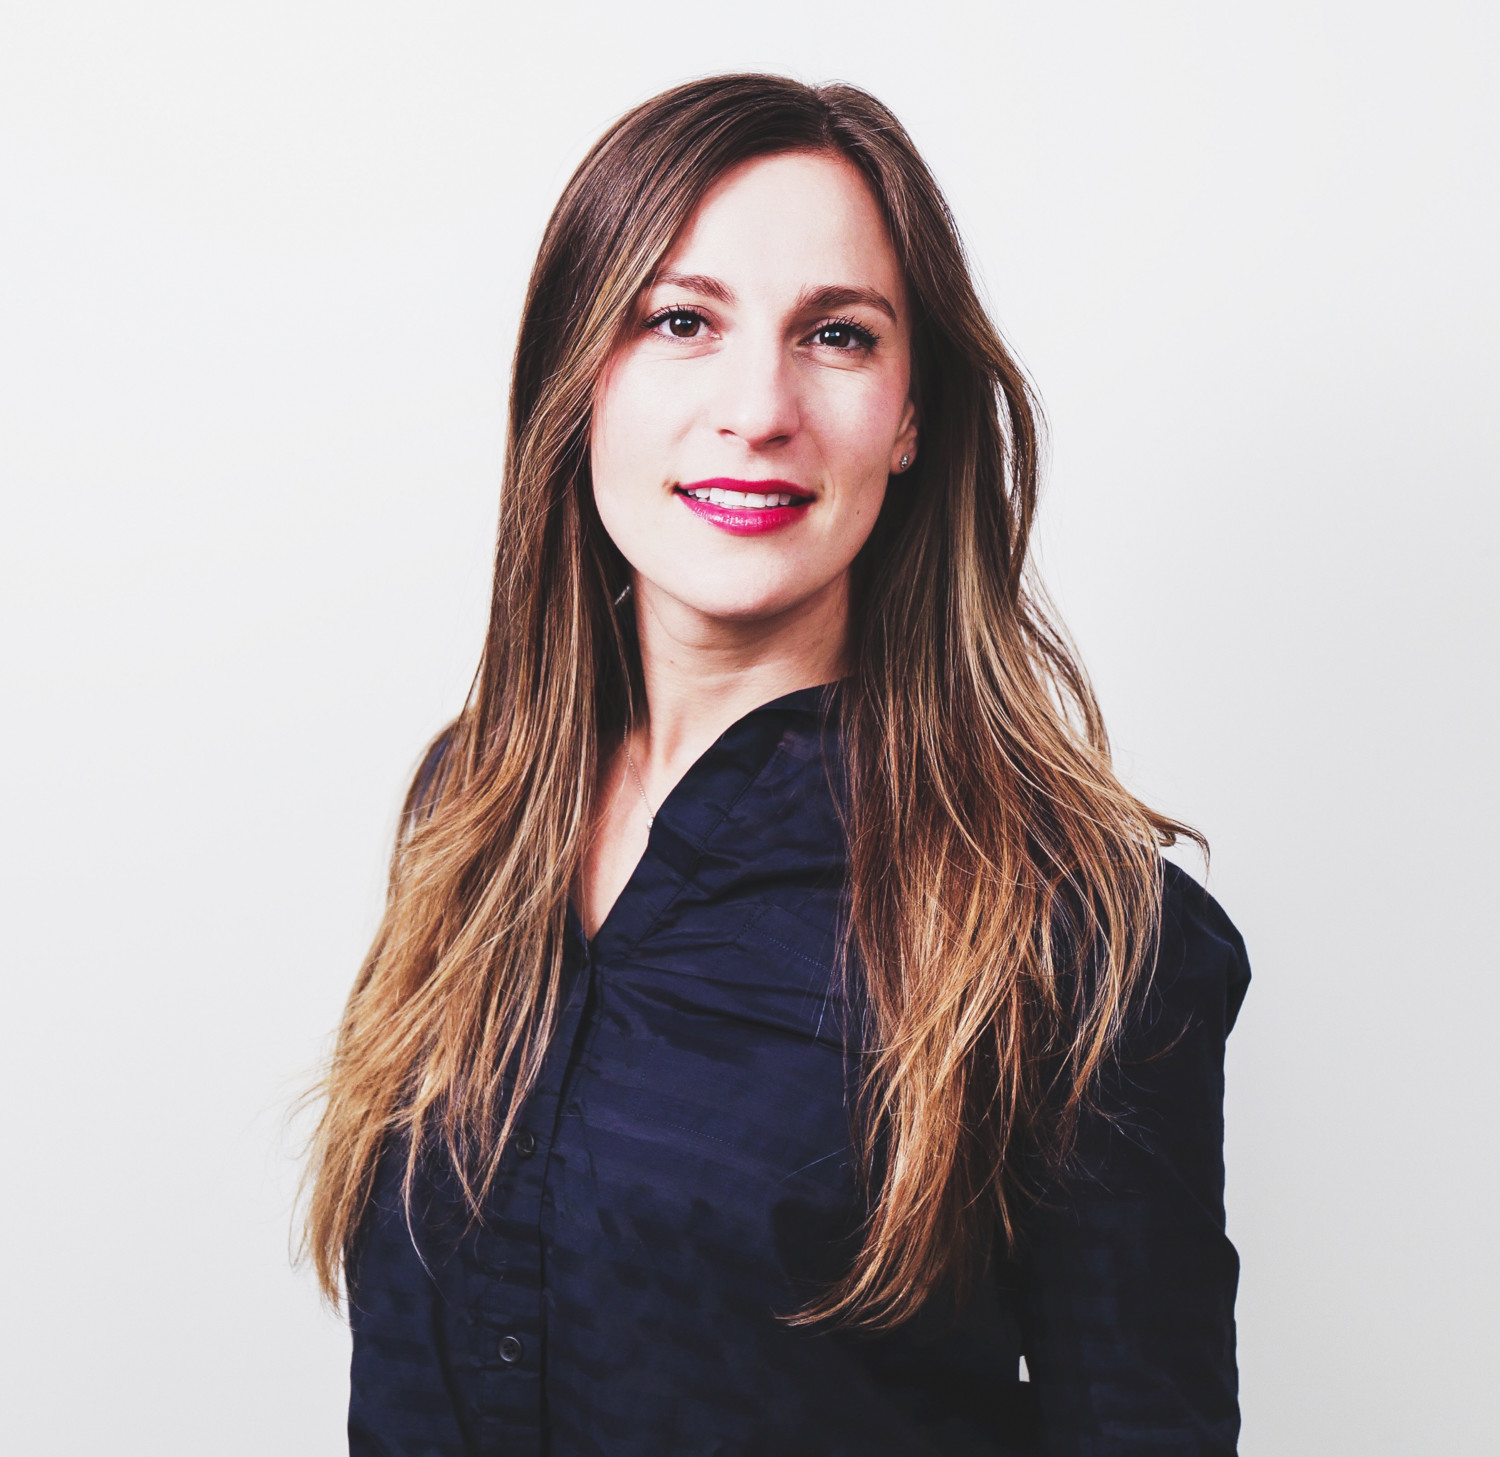 Alessandra Biaggi formally entered the race against Sen. Jeff Klein on Jan. 3. She previously worked as an aide to Gov. Andrew Cuomo, and before that, she was deputy national operations director for Hillary Clinton's presidential campaign.